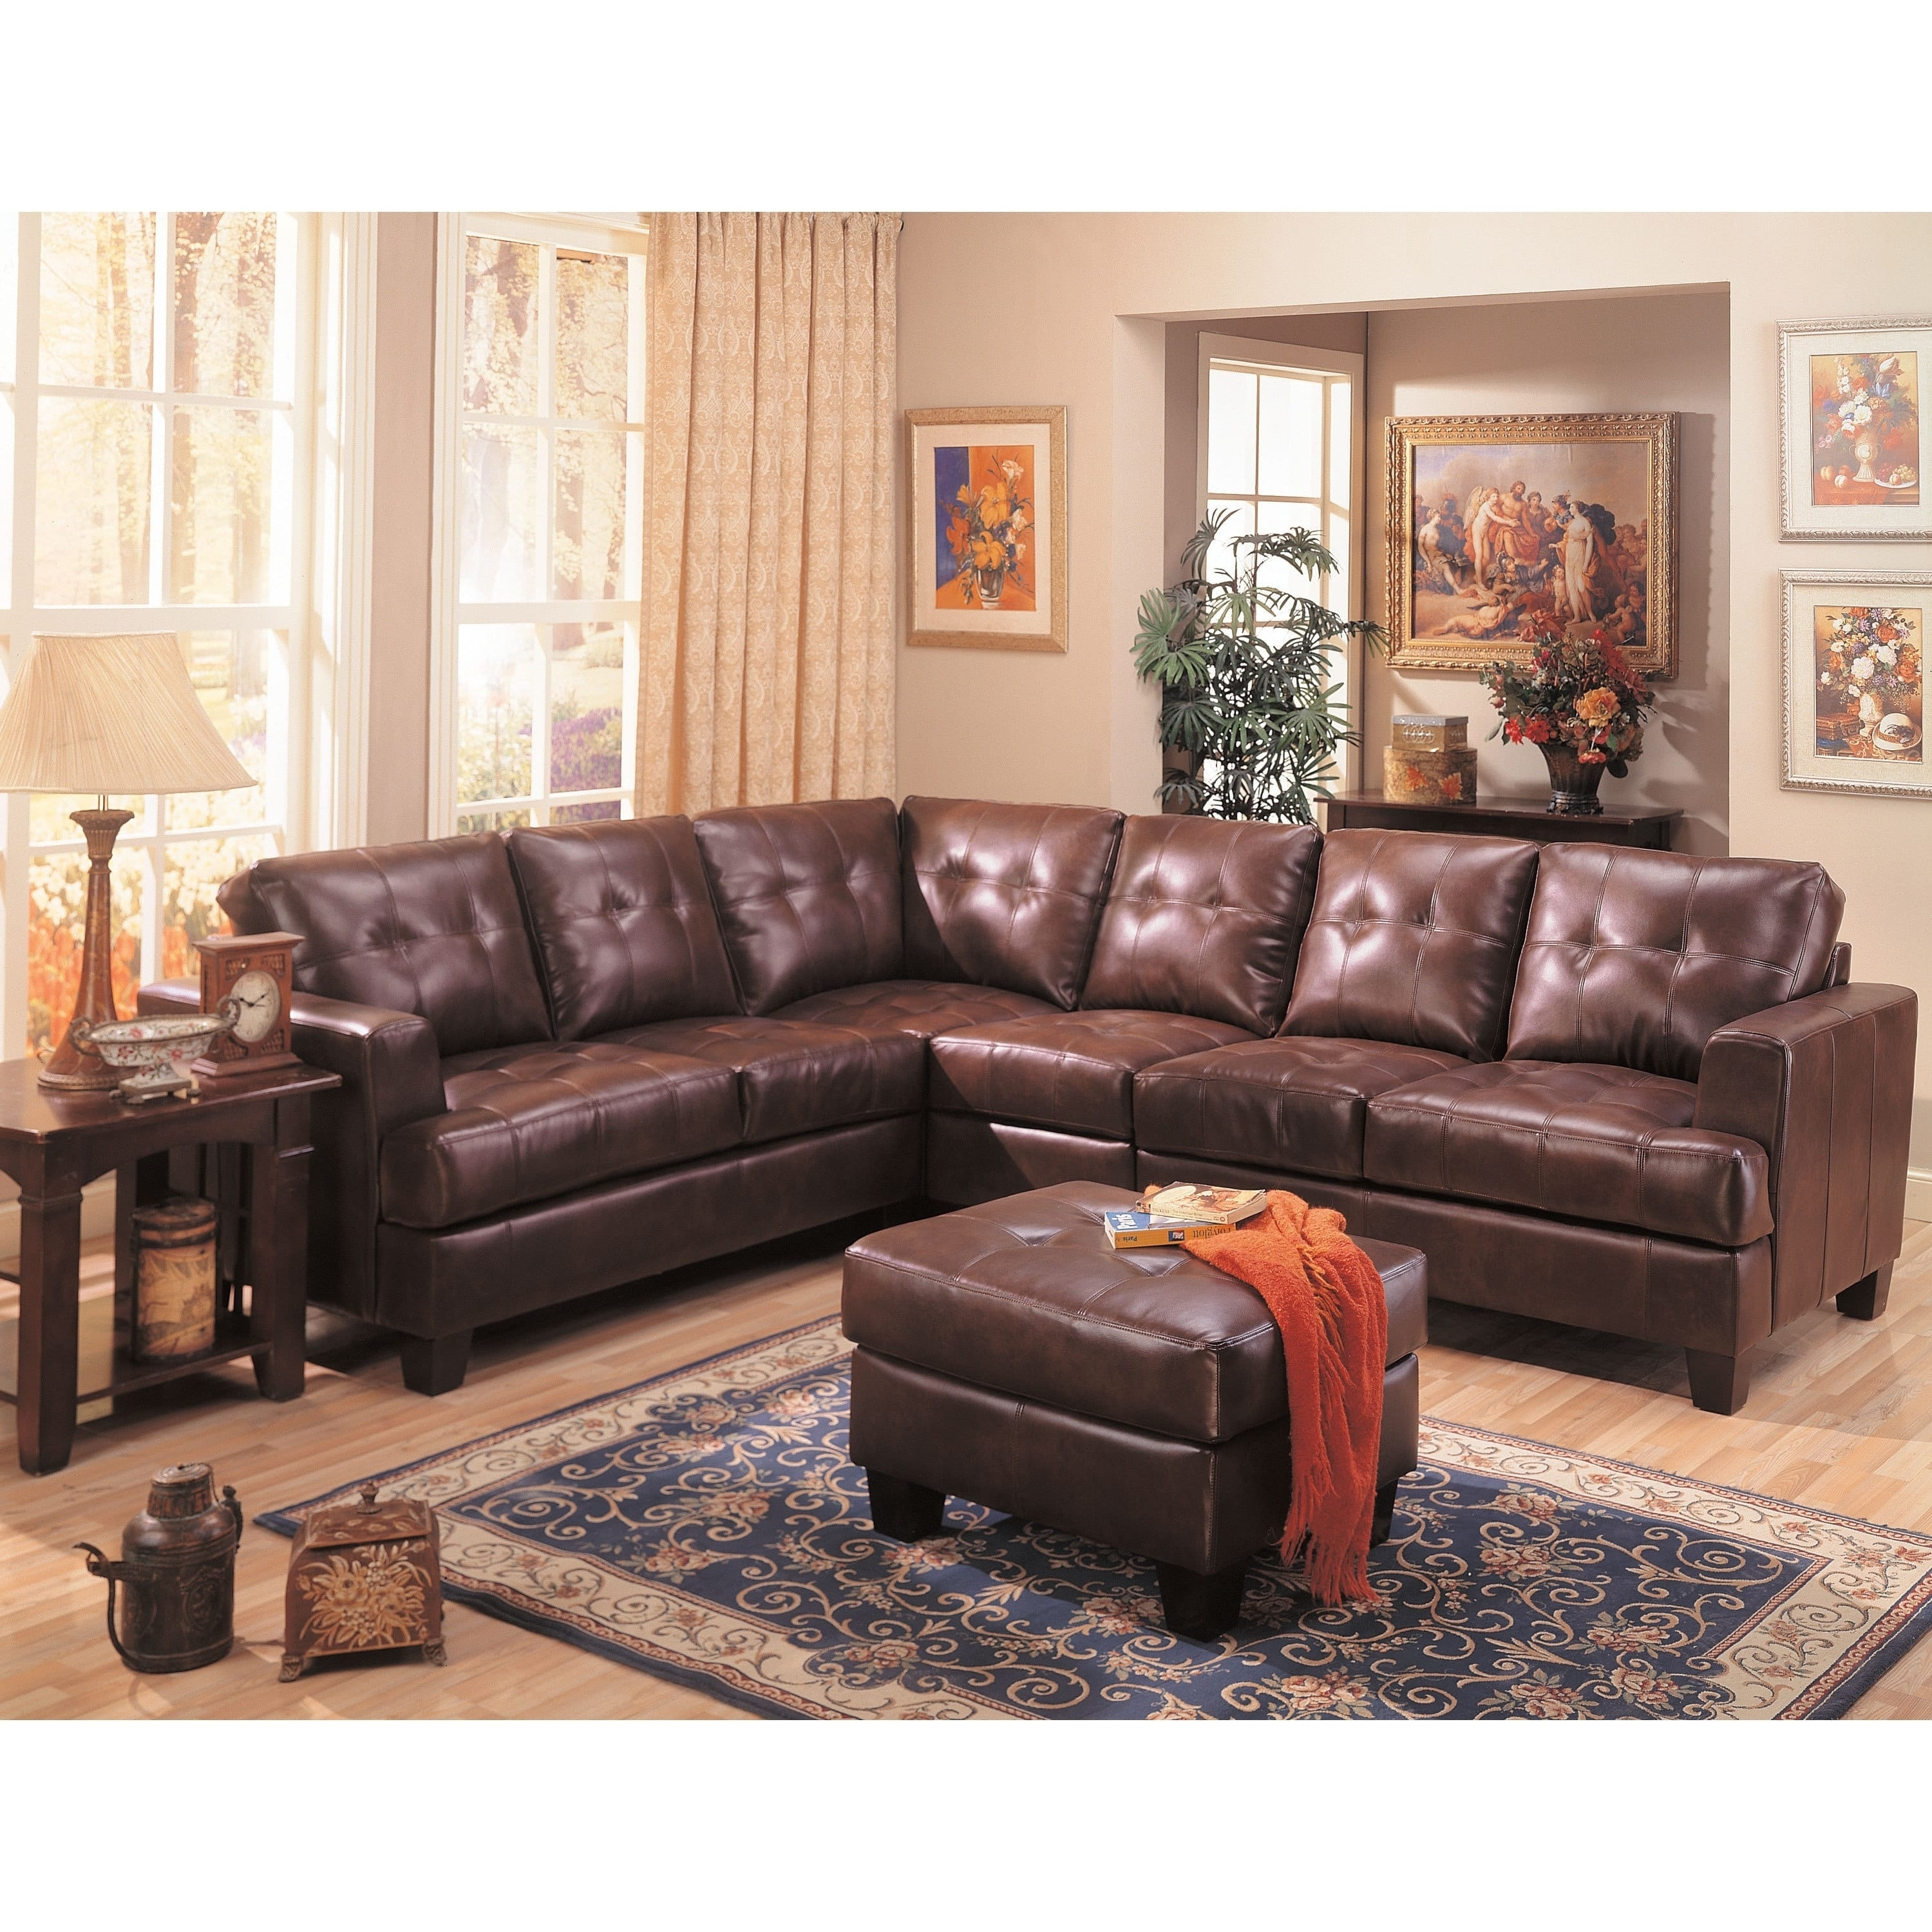 Sectional sofa pieces sold separately Sofas